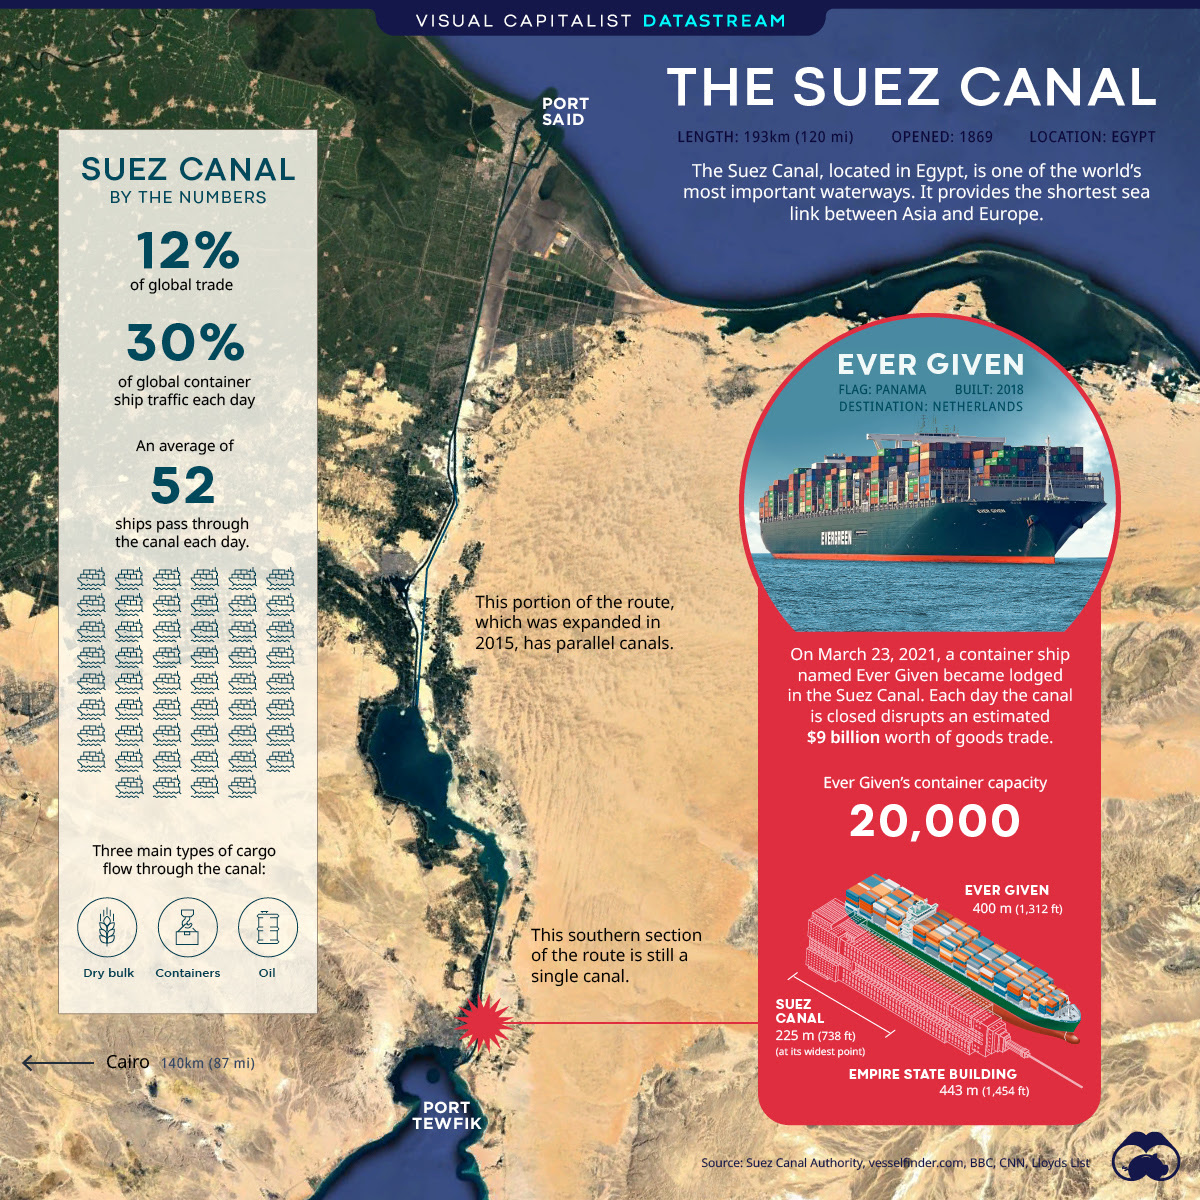 The Suez Canal: A Critical Waterway Comes to a Halt